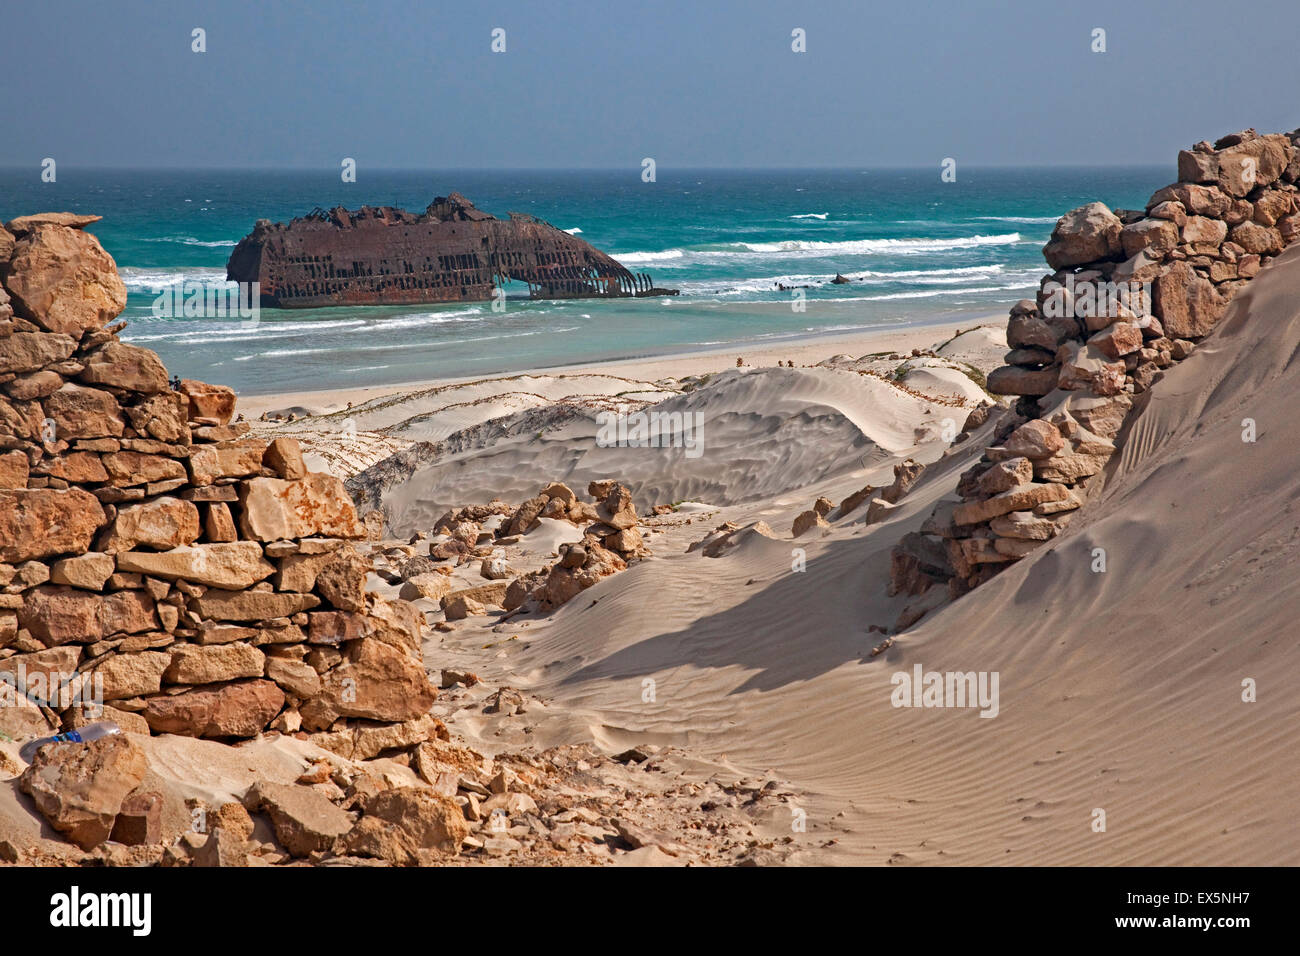 Wreck of the ship M/S Cabo Santa Maria beached in Praia de Atalanta on the island Boa Vista, Cape Verde / Cabo Verde, - Stock Image